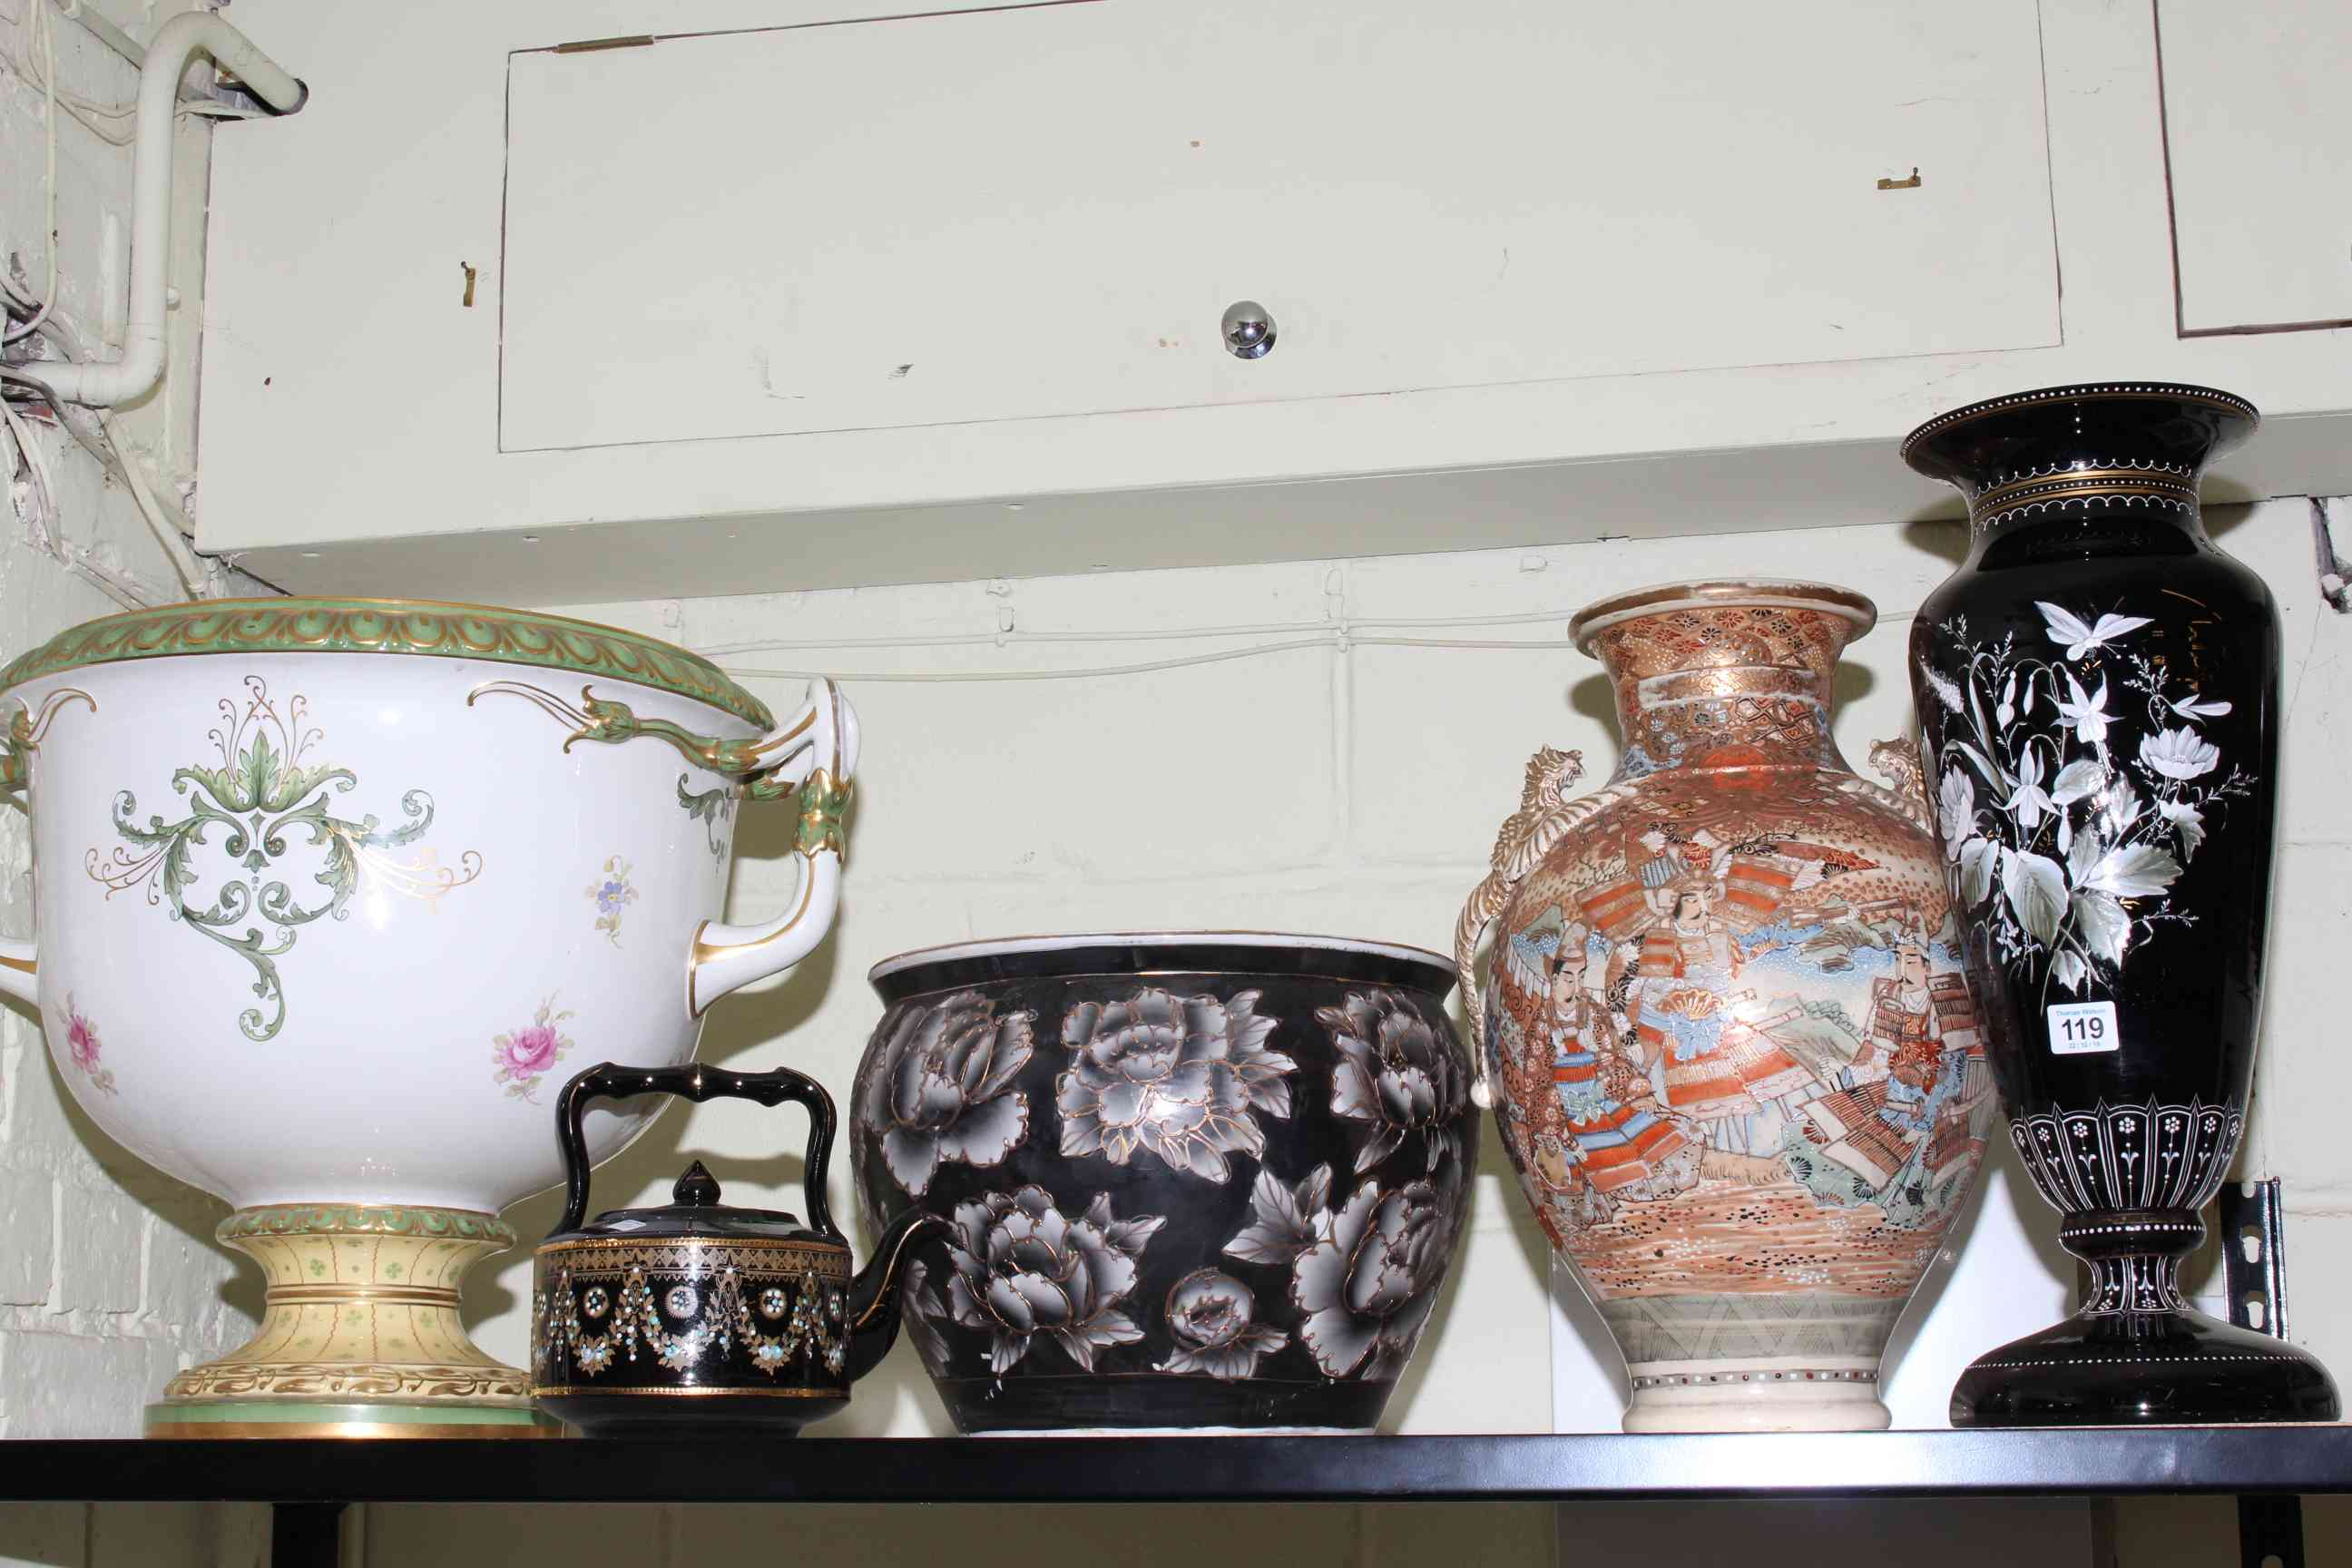 Lot 119 - Satsuma vase, large china urn, jardiniere, floral glass vase and teapot.